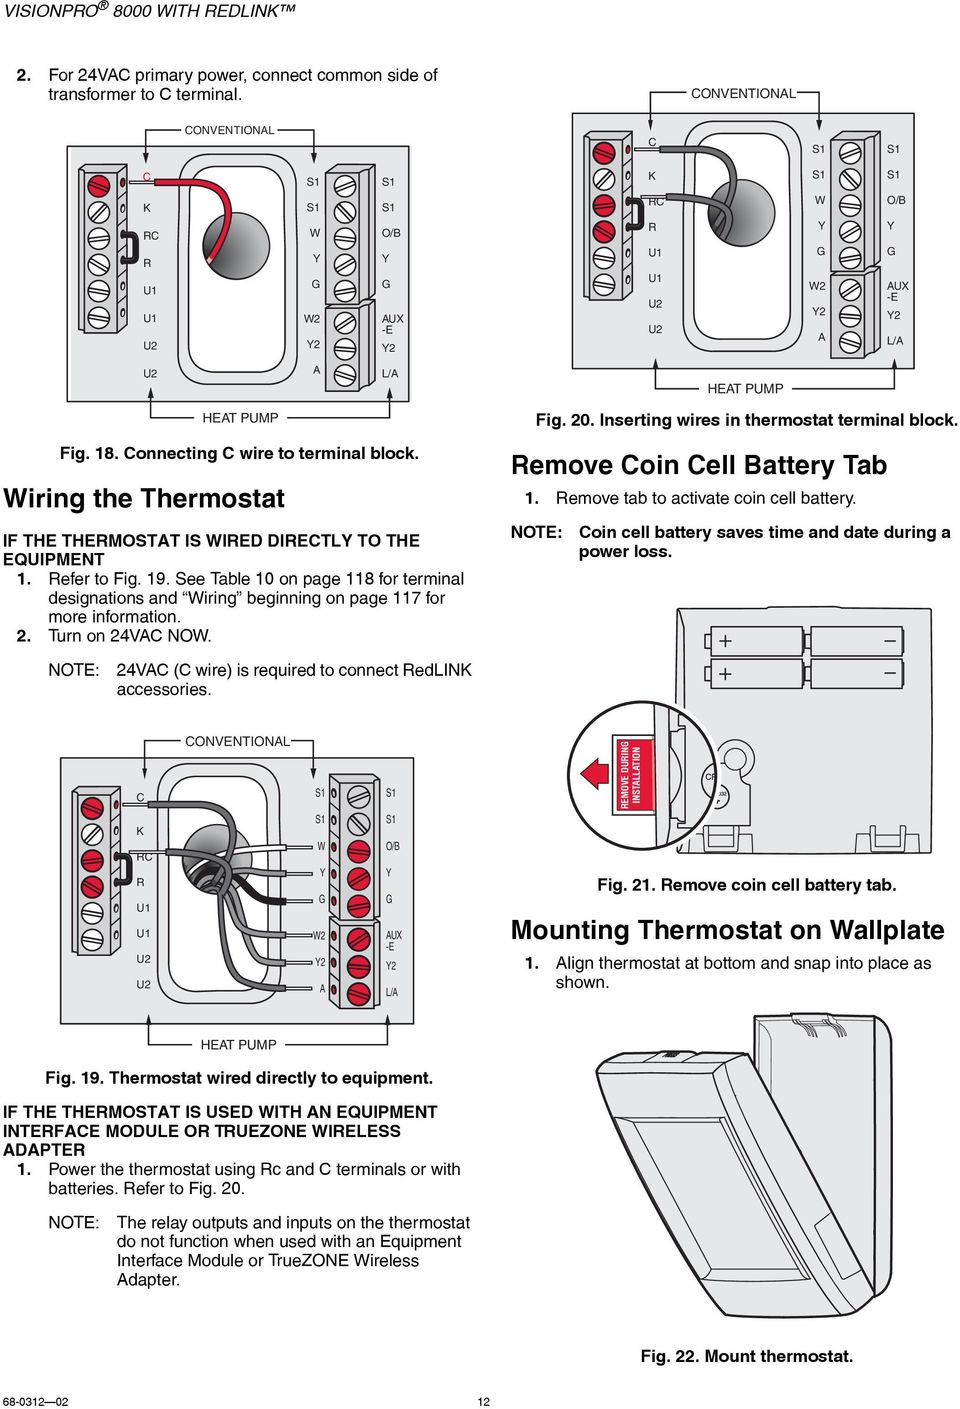 2 wire thermostat wiring diagram shunt trip breaker 24vac thermostat wiring